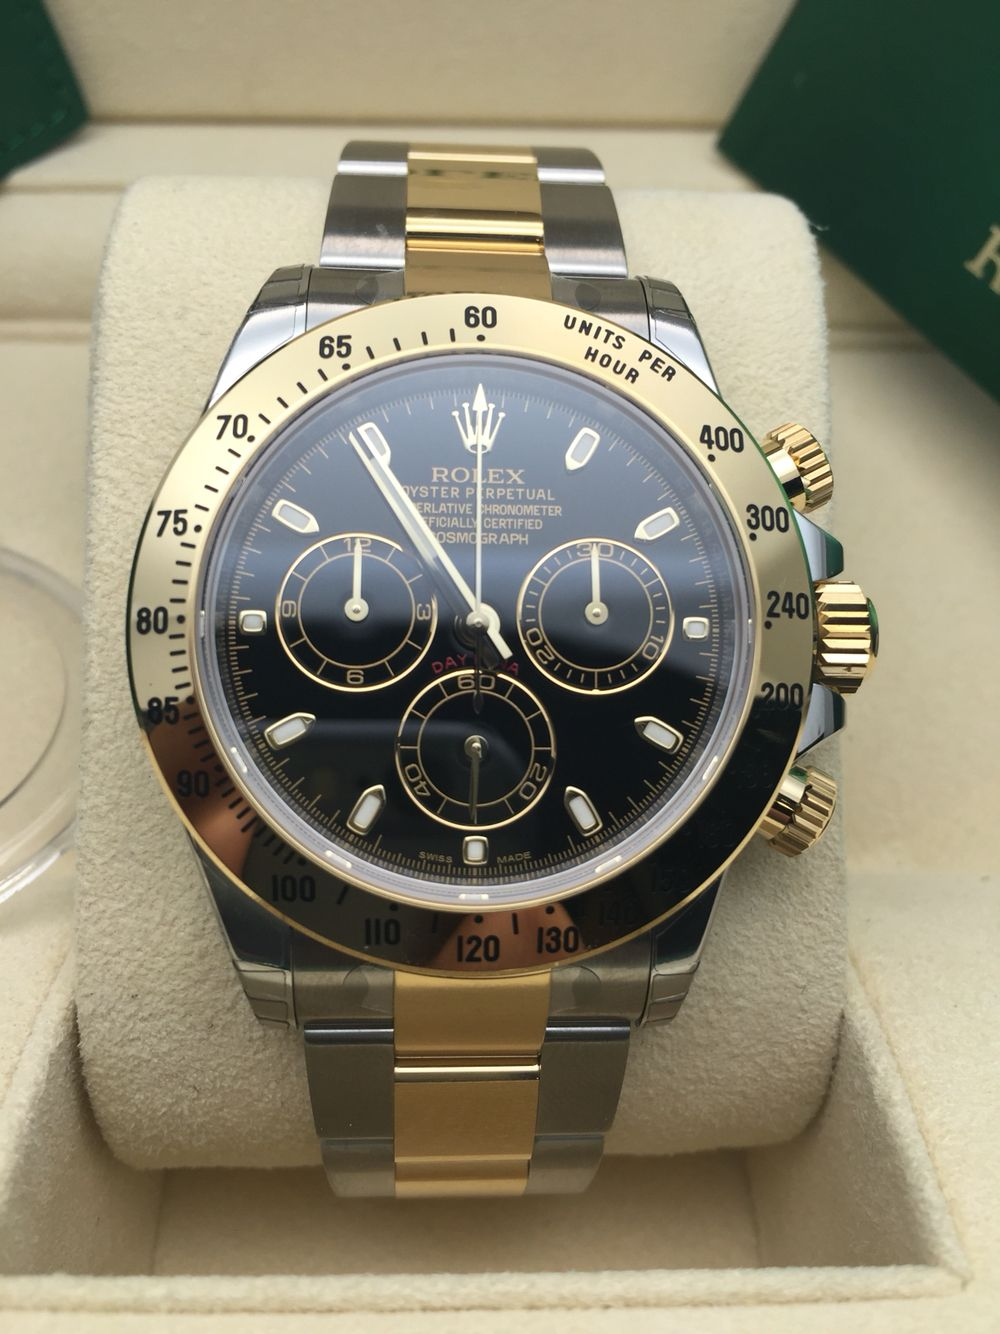 Rolex Prices Uk >> Rolex Daytona 116523 Best Prices On The Market With